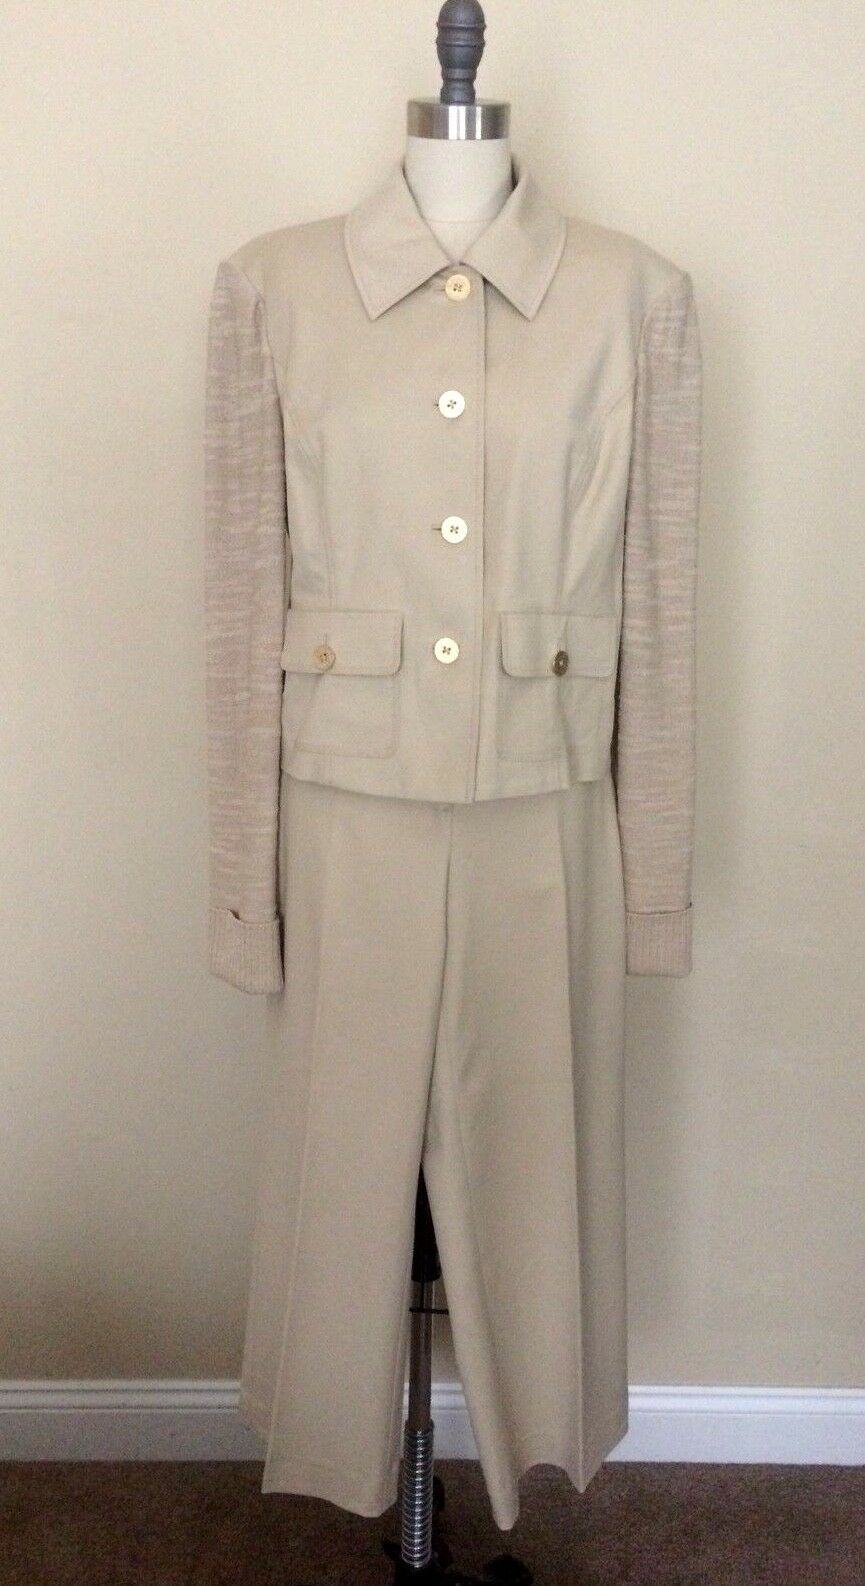 ST JOHN knits MEDIUM SIZE 8 10 10 12 Suit Sweater Classic Cardigan Tan Capri